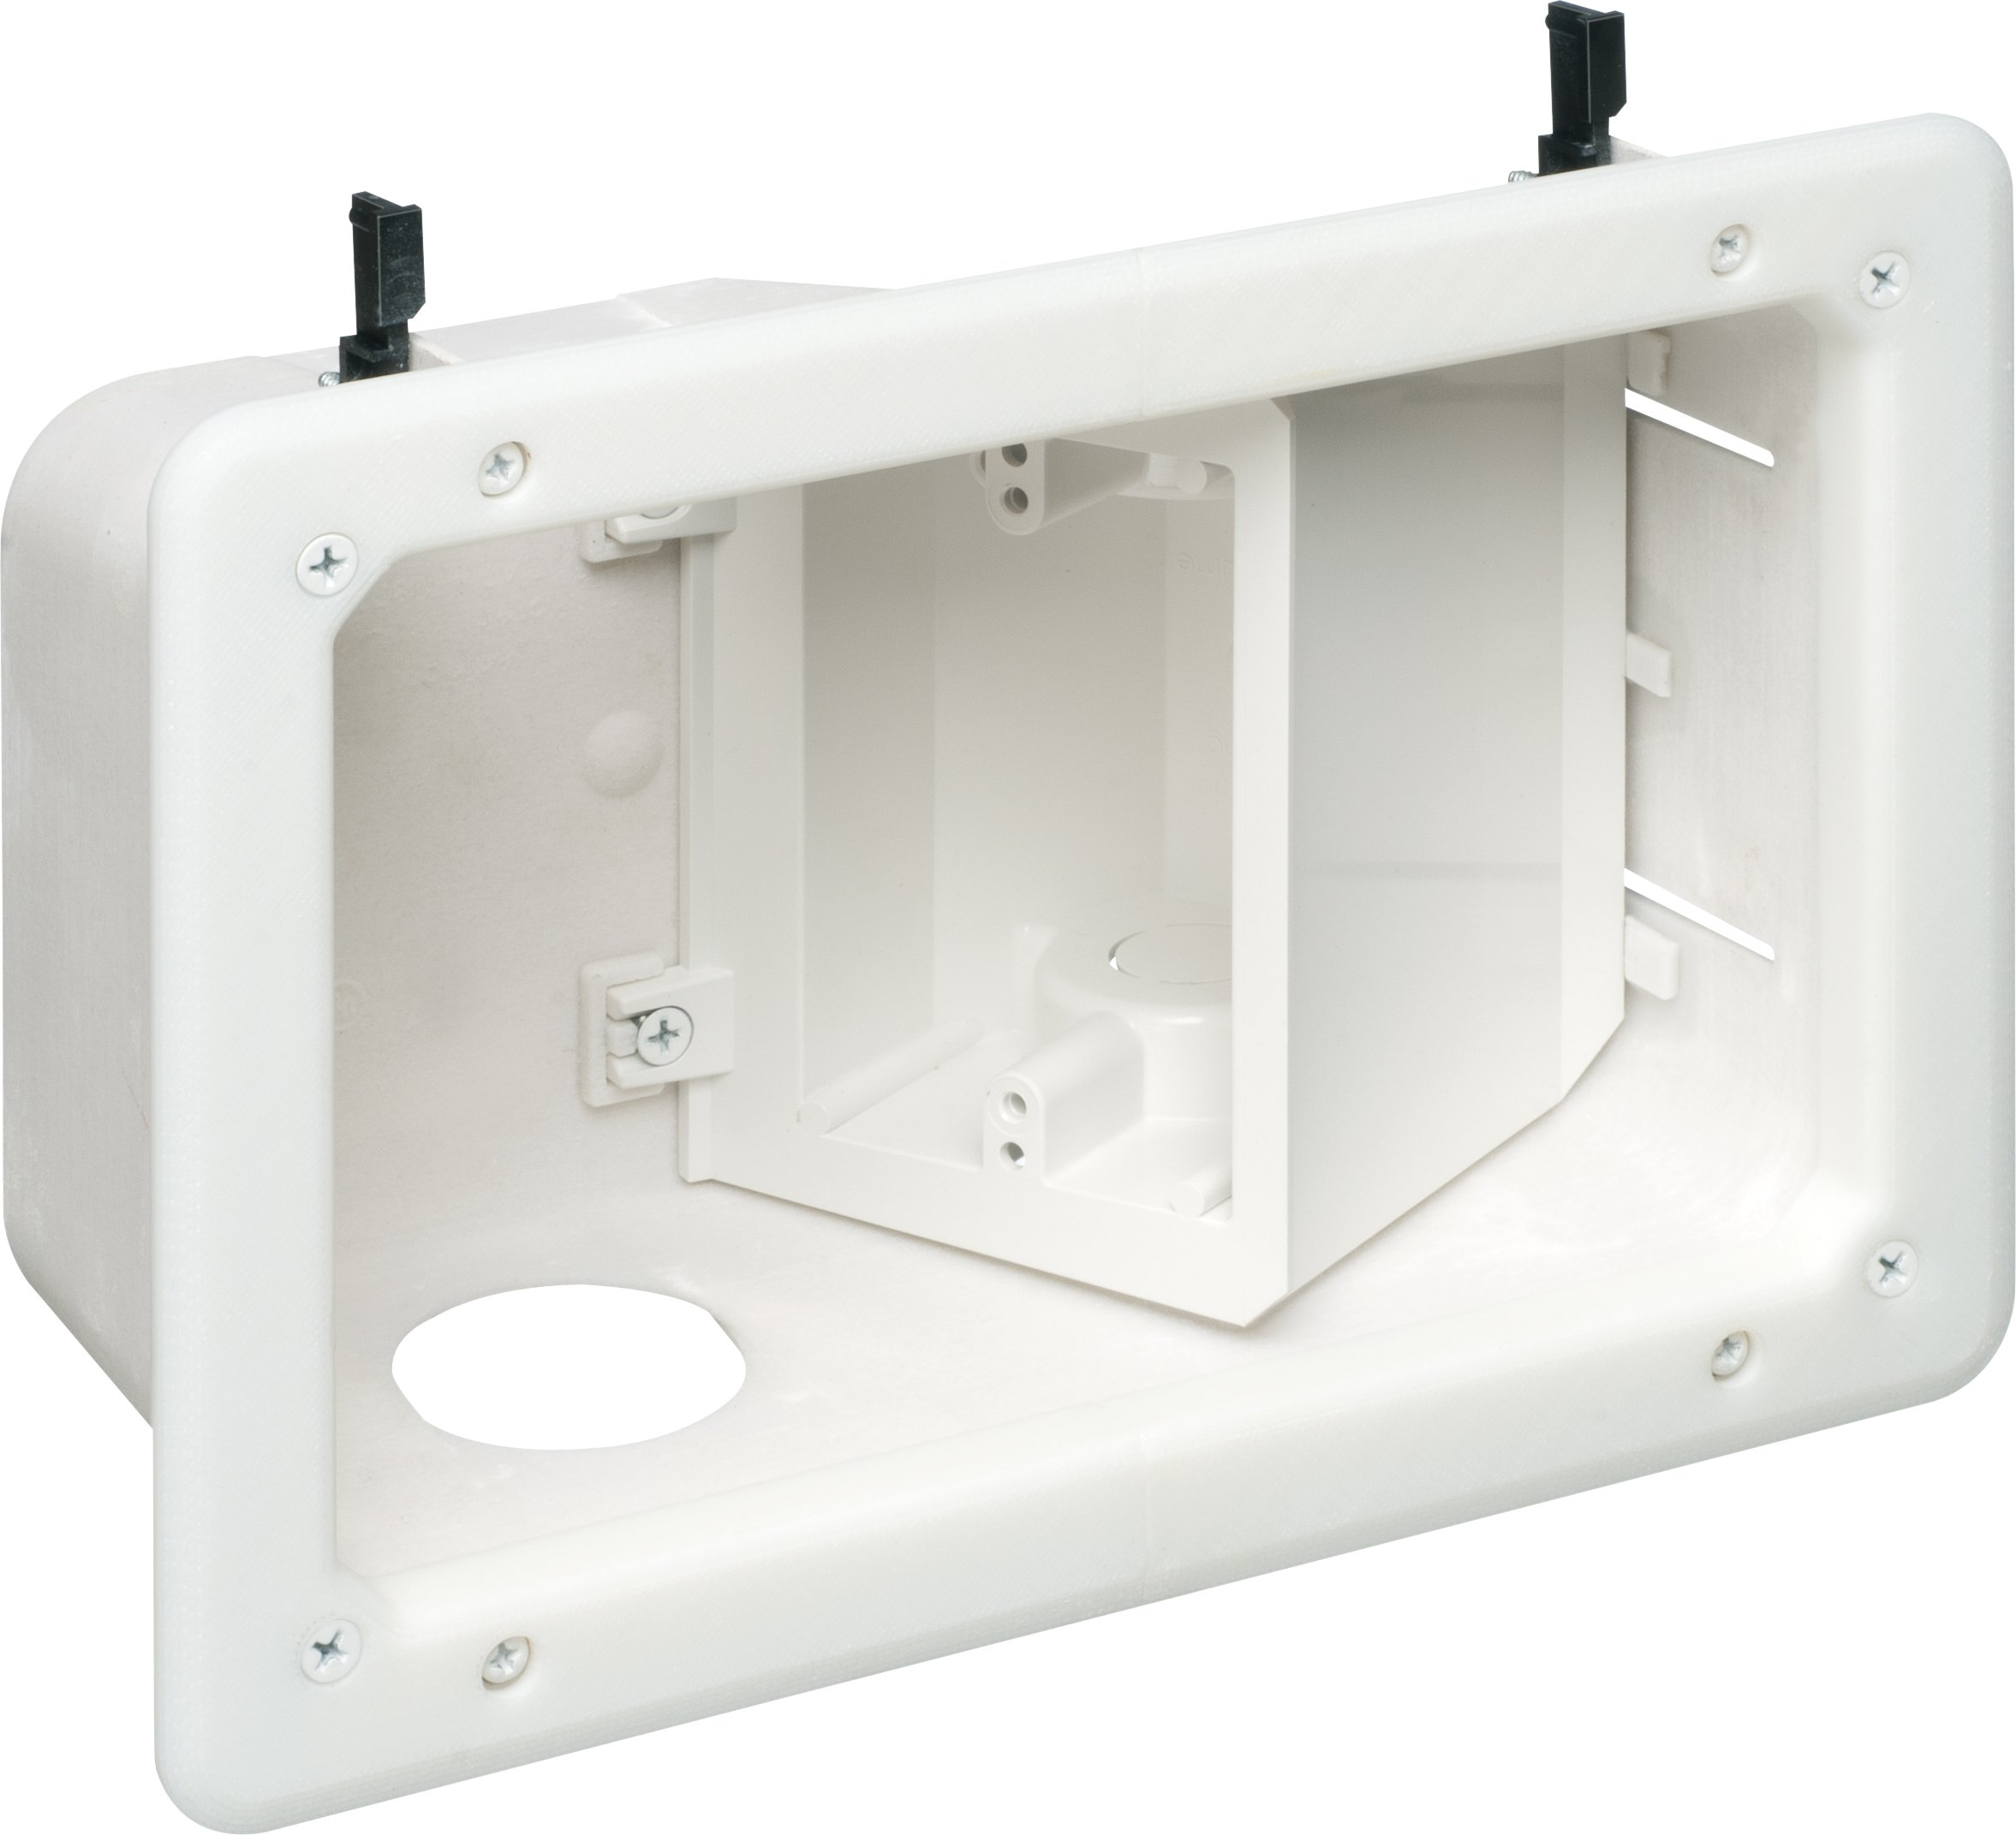 Arlington Industries TVB712 2-Gang Angled TV Box Recessed Outlet Wall Plate Kit, White, 1-Pack by Arlington Industries